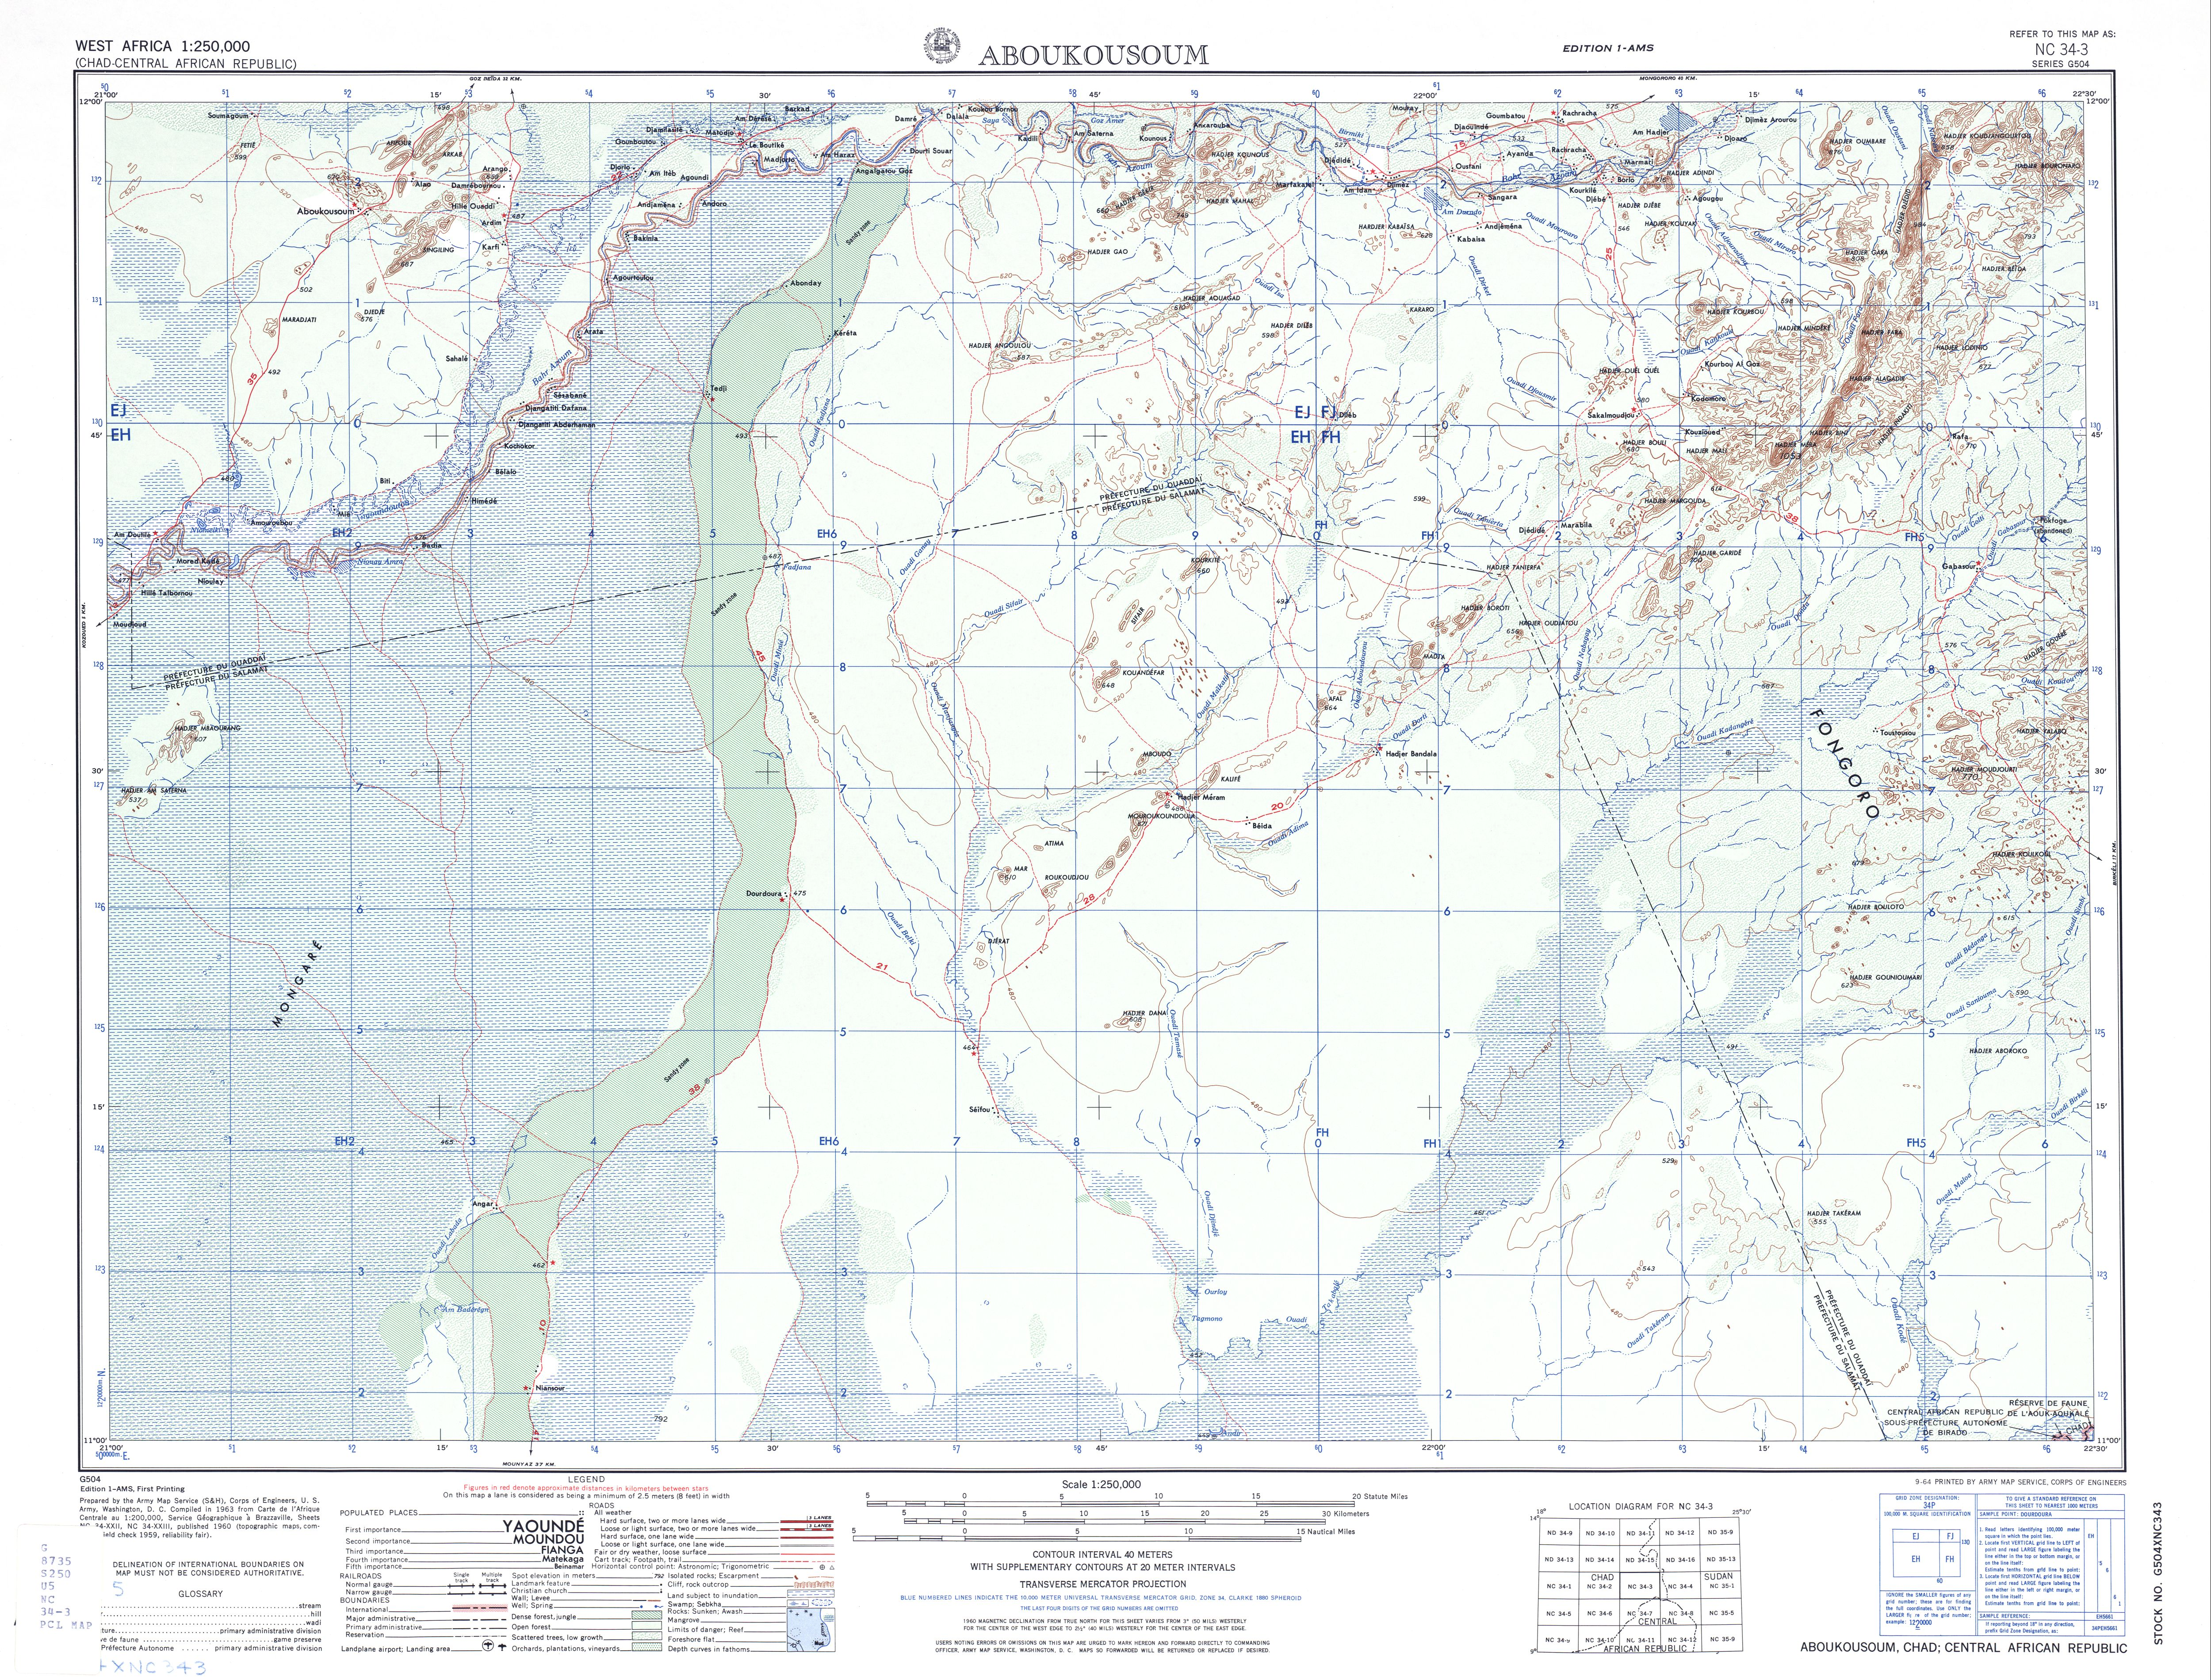 Aboukousoum Topographic Map Sheet, Western Africa 1955